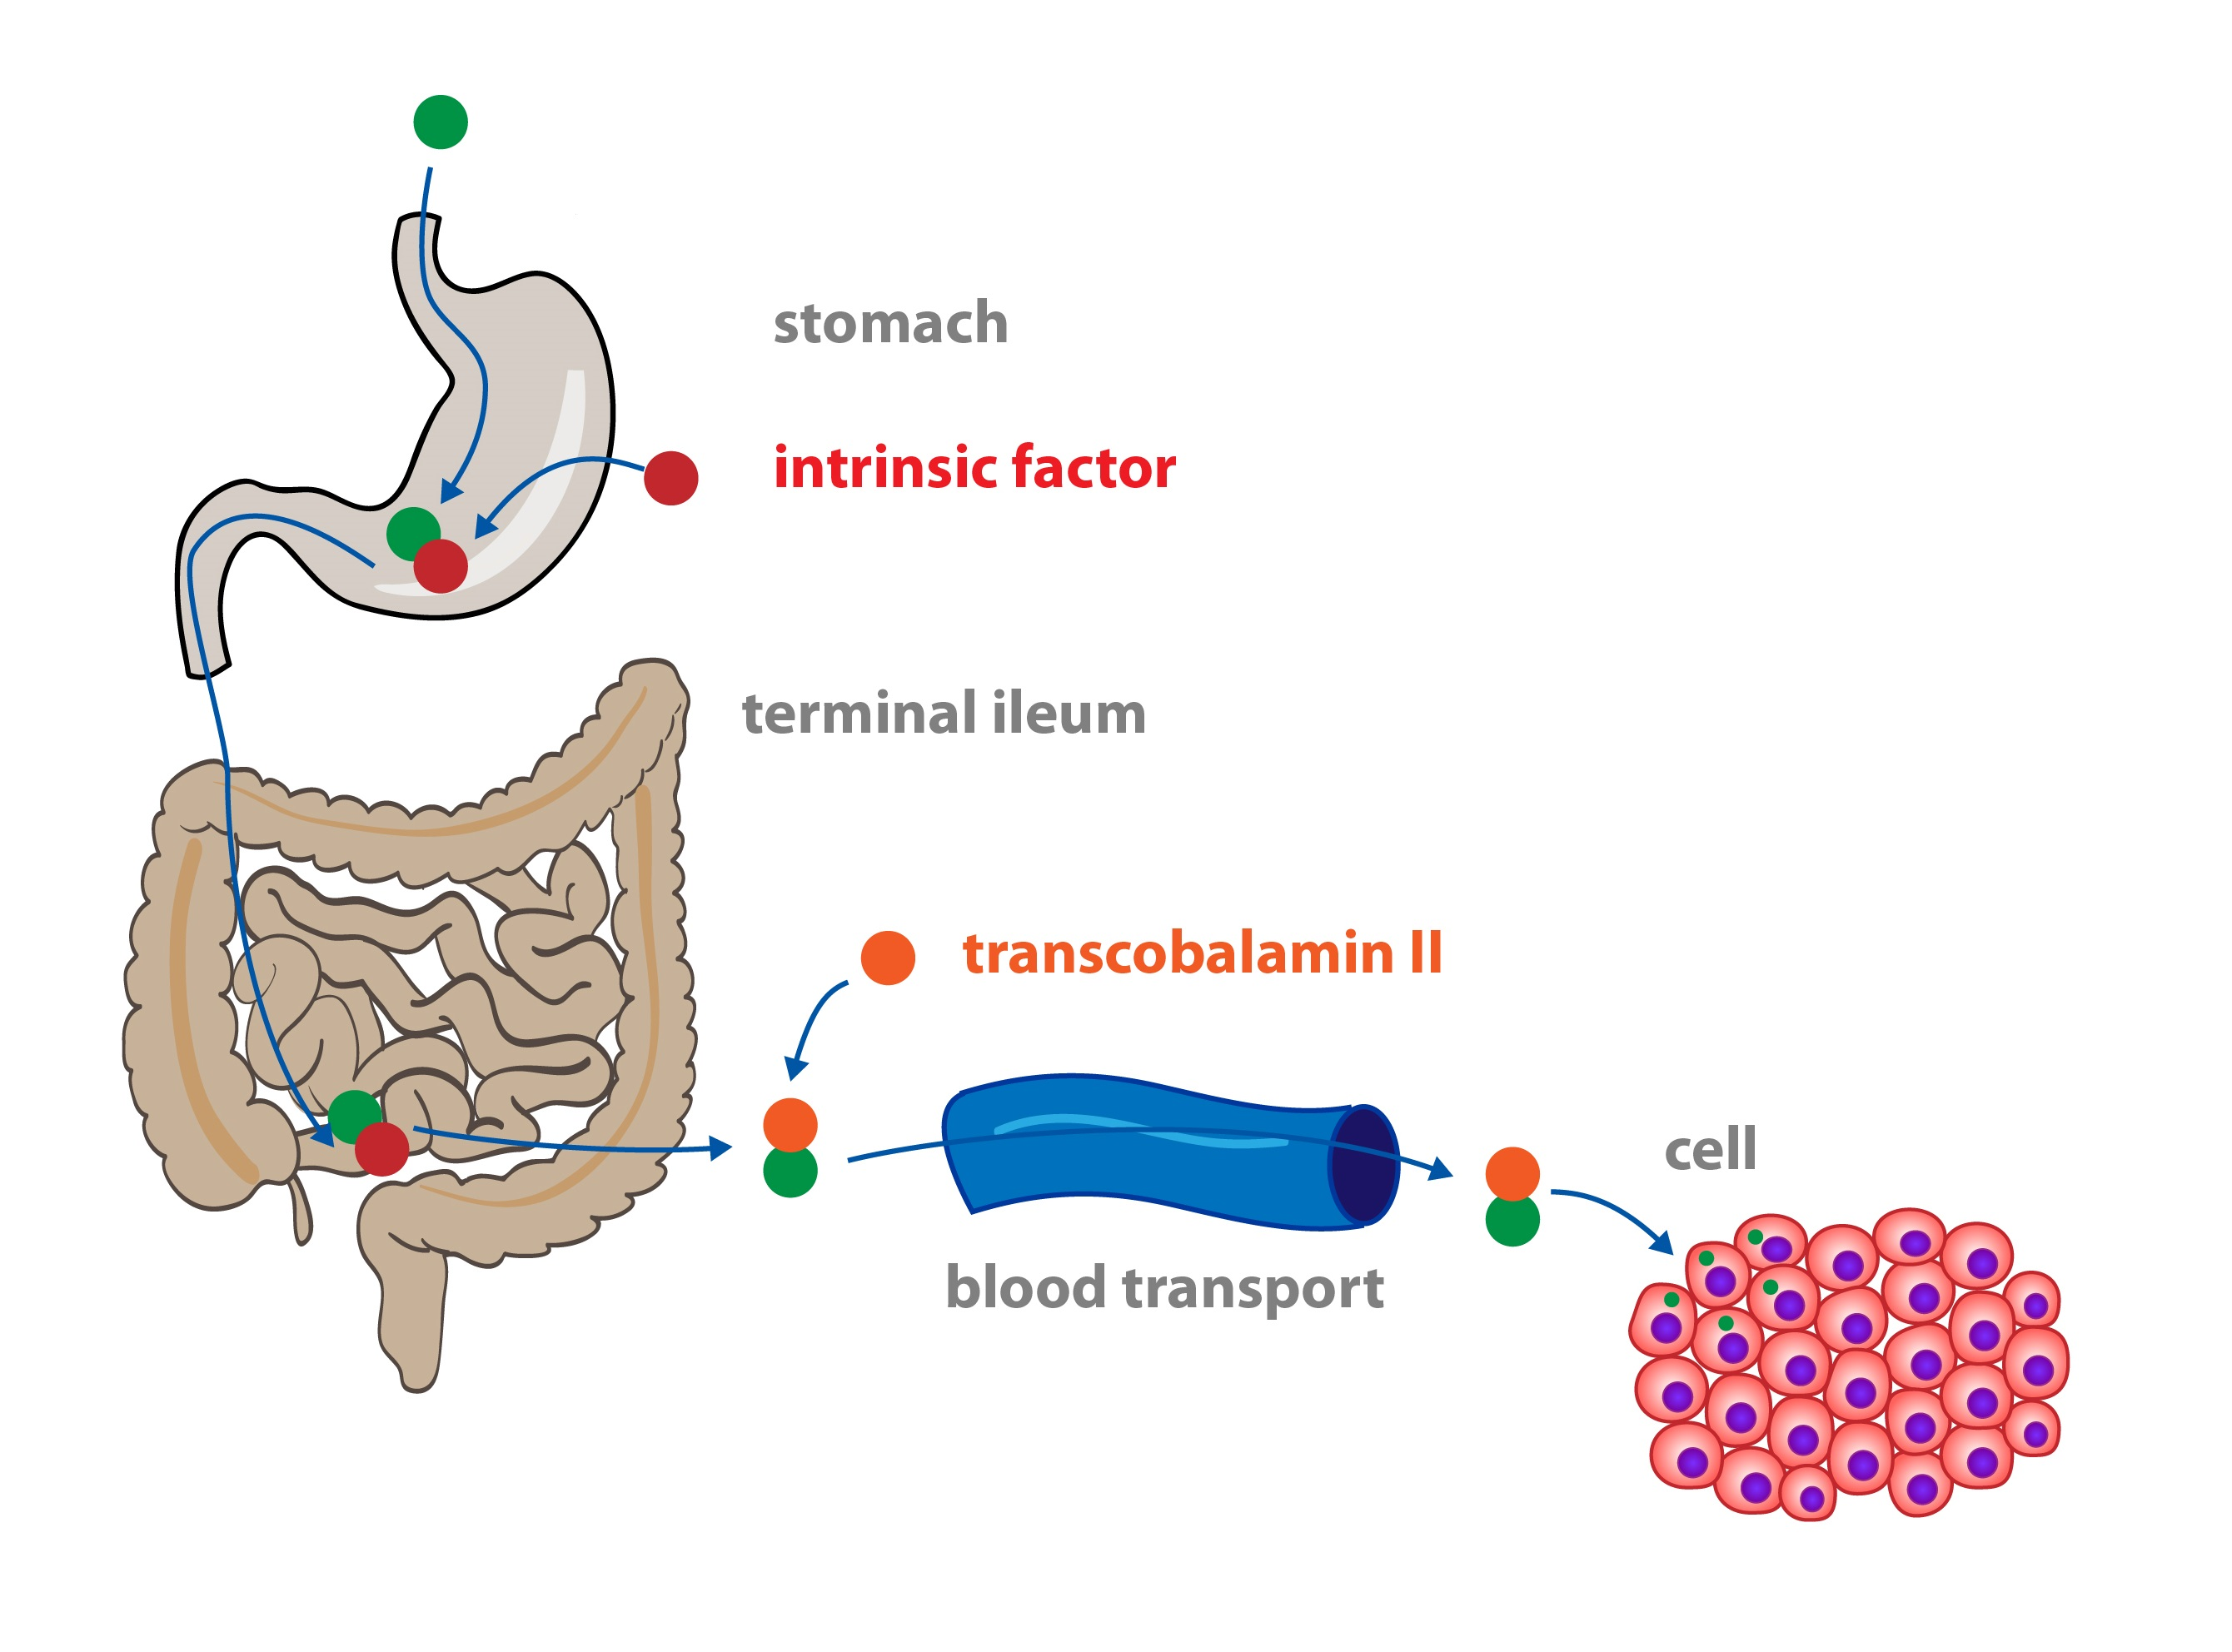 6. Vitamins and Nutrition • Functions of Cells and Human Body